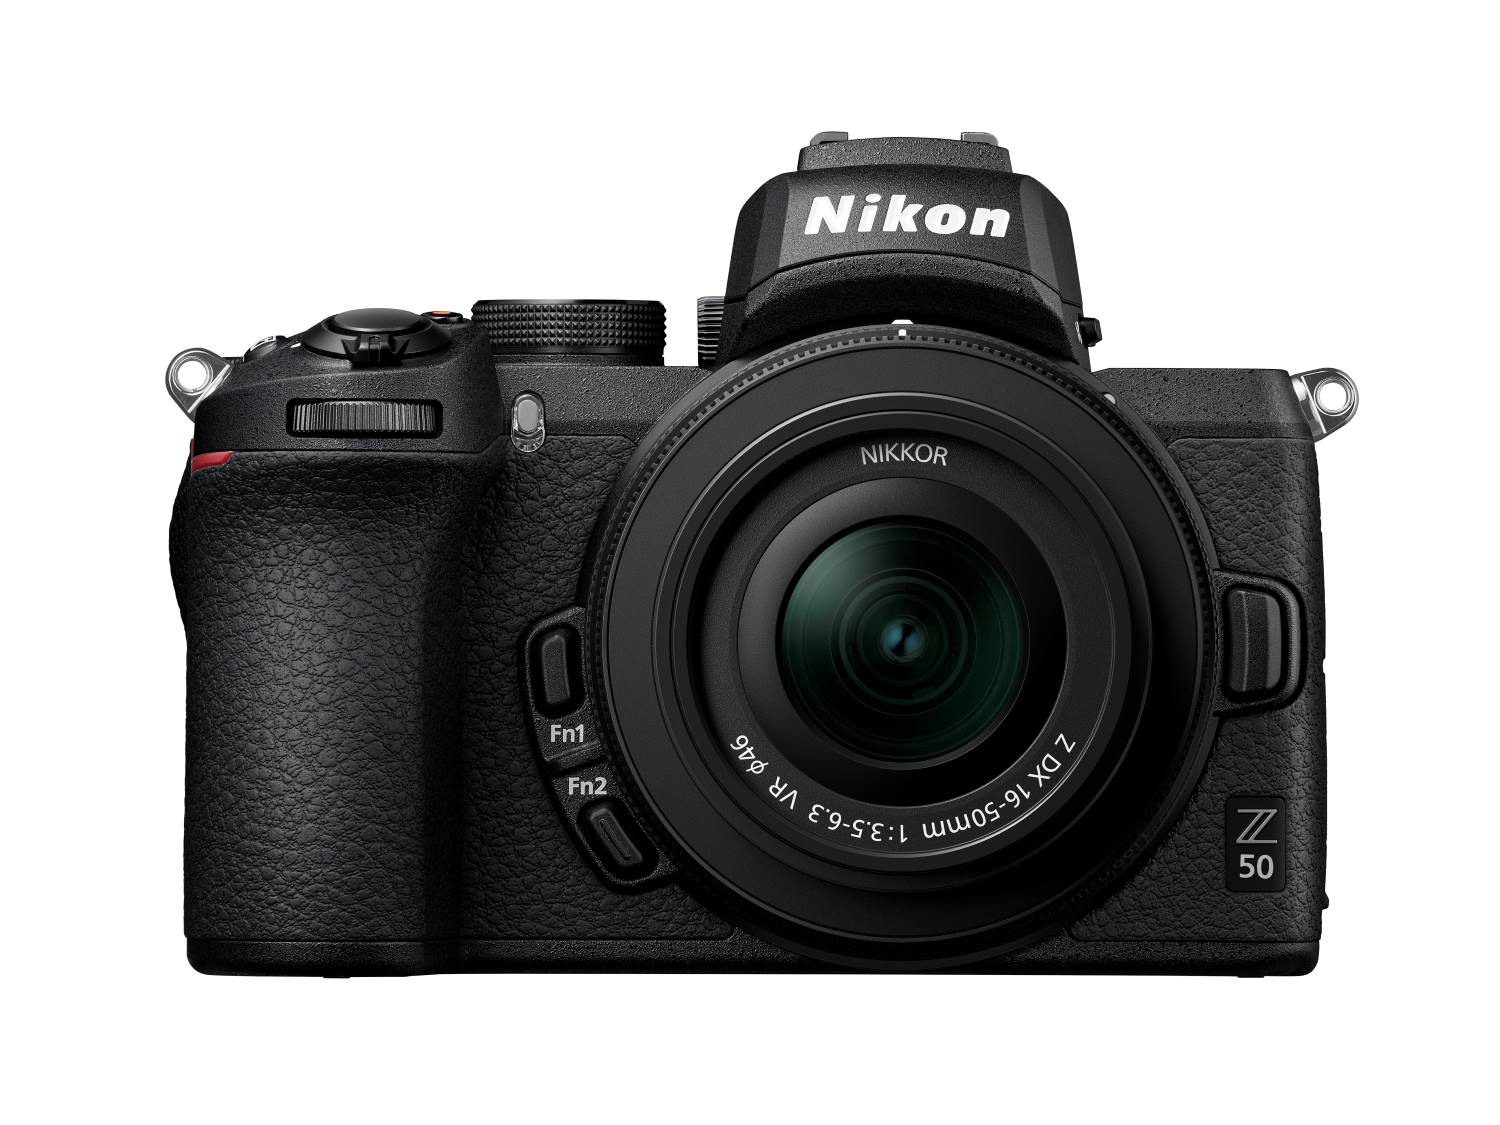 Nikon Z30 and Nikon Z5 may soon be released